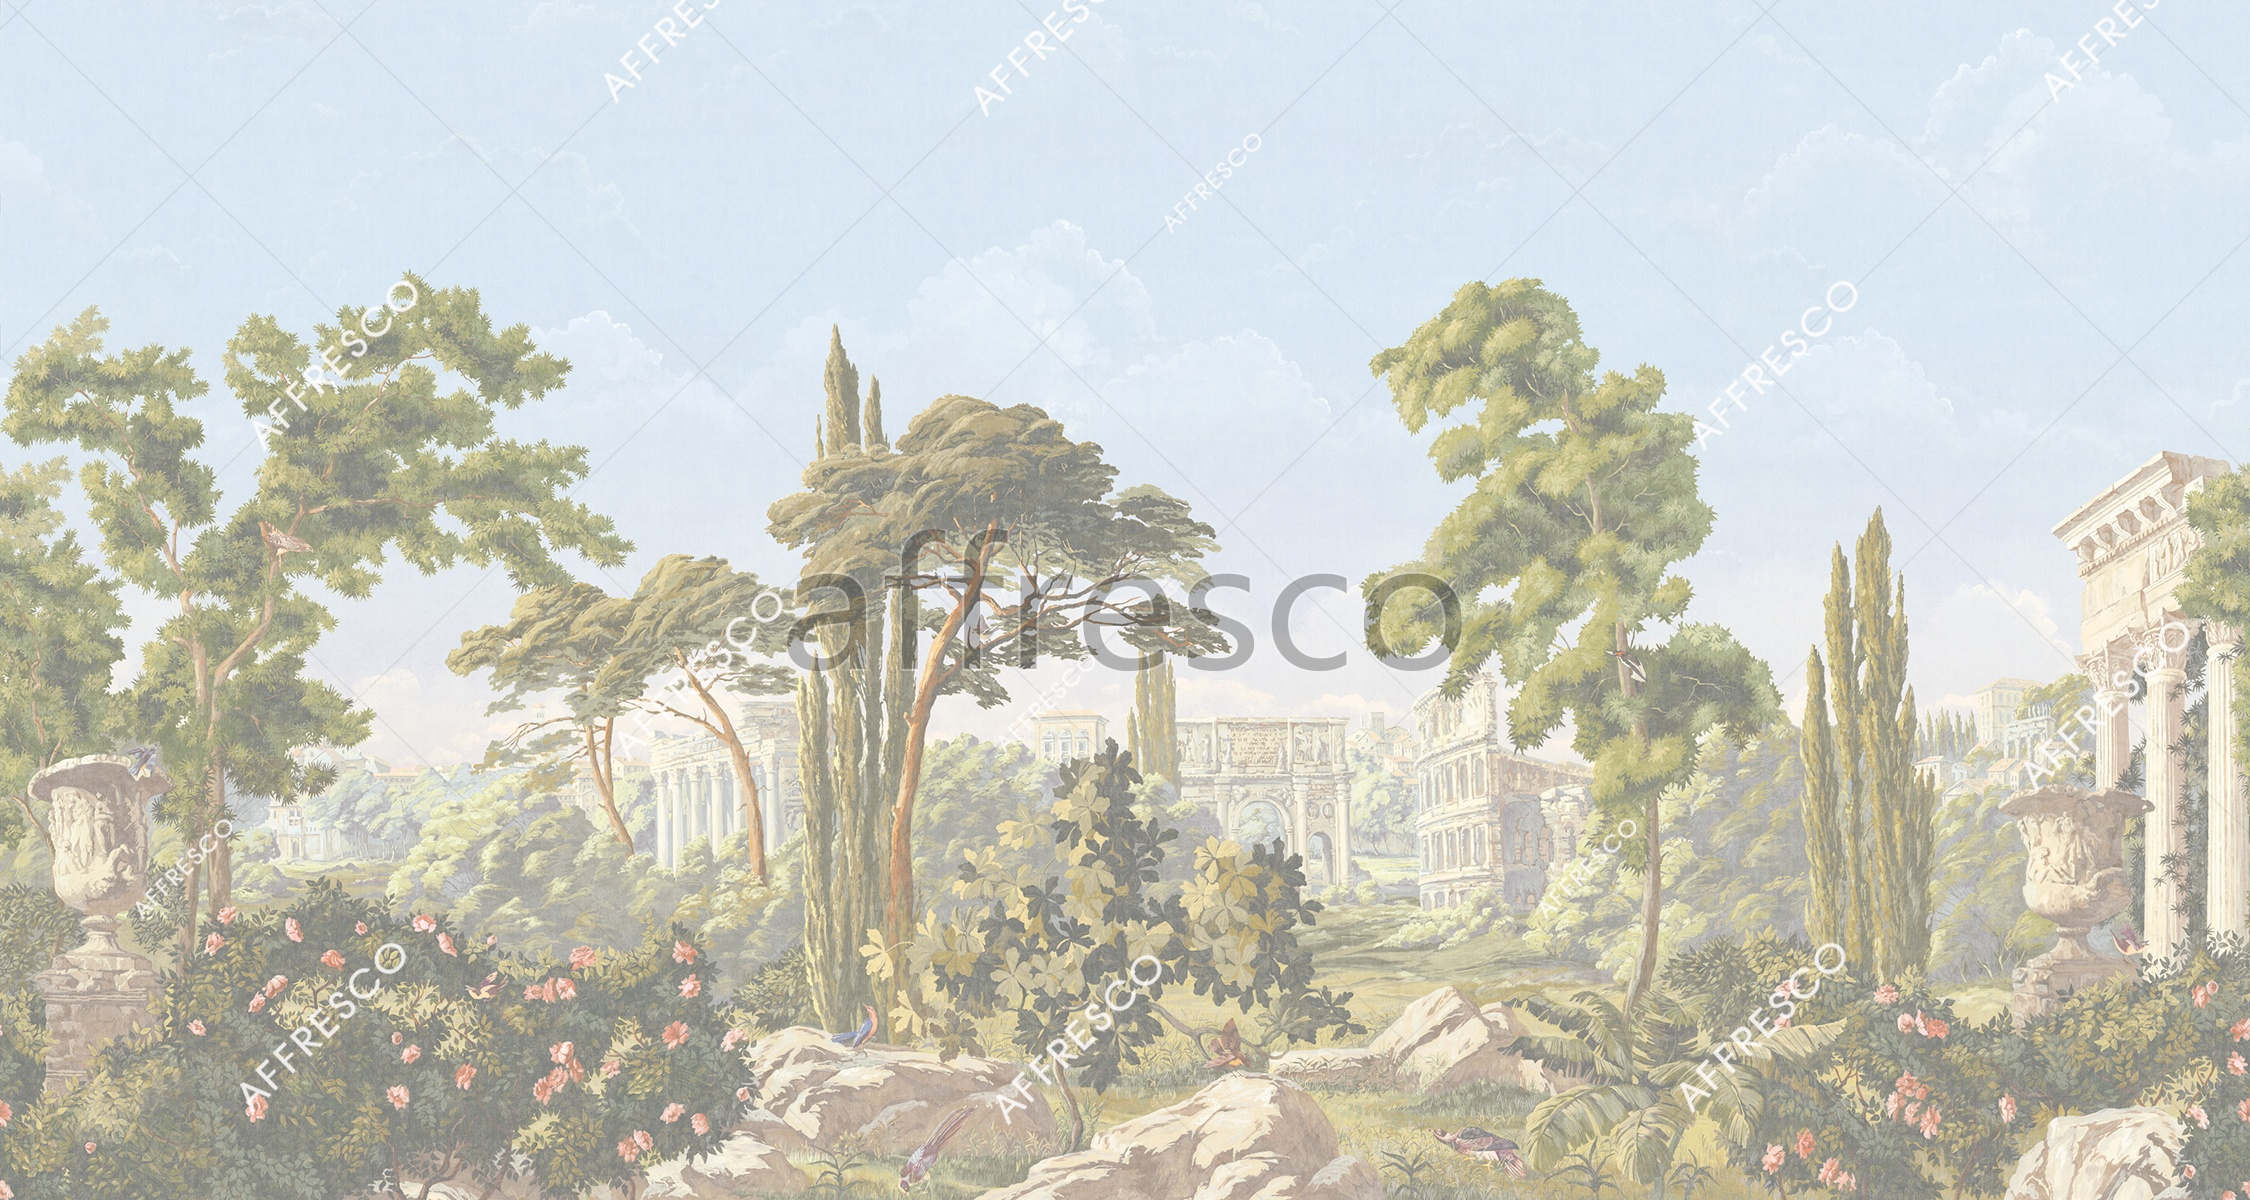 Handmade wallpaper, Roman landscape with ruins